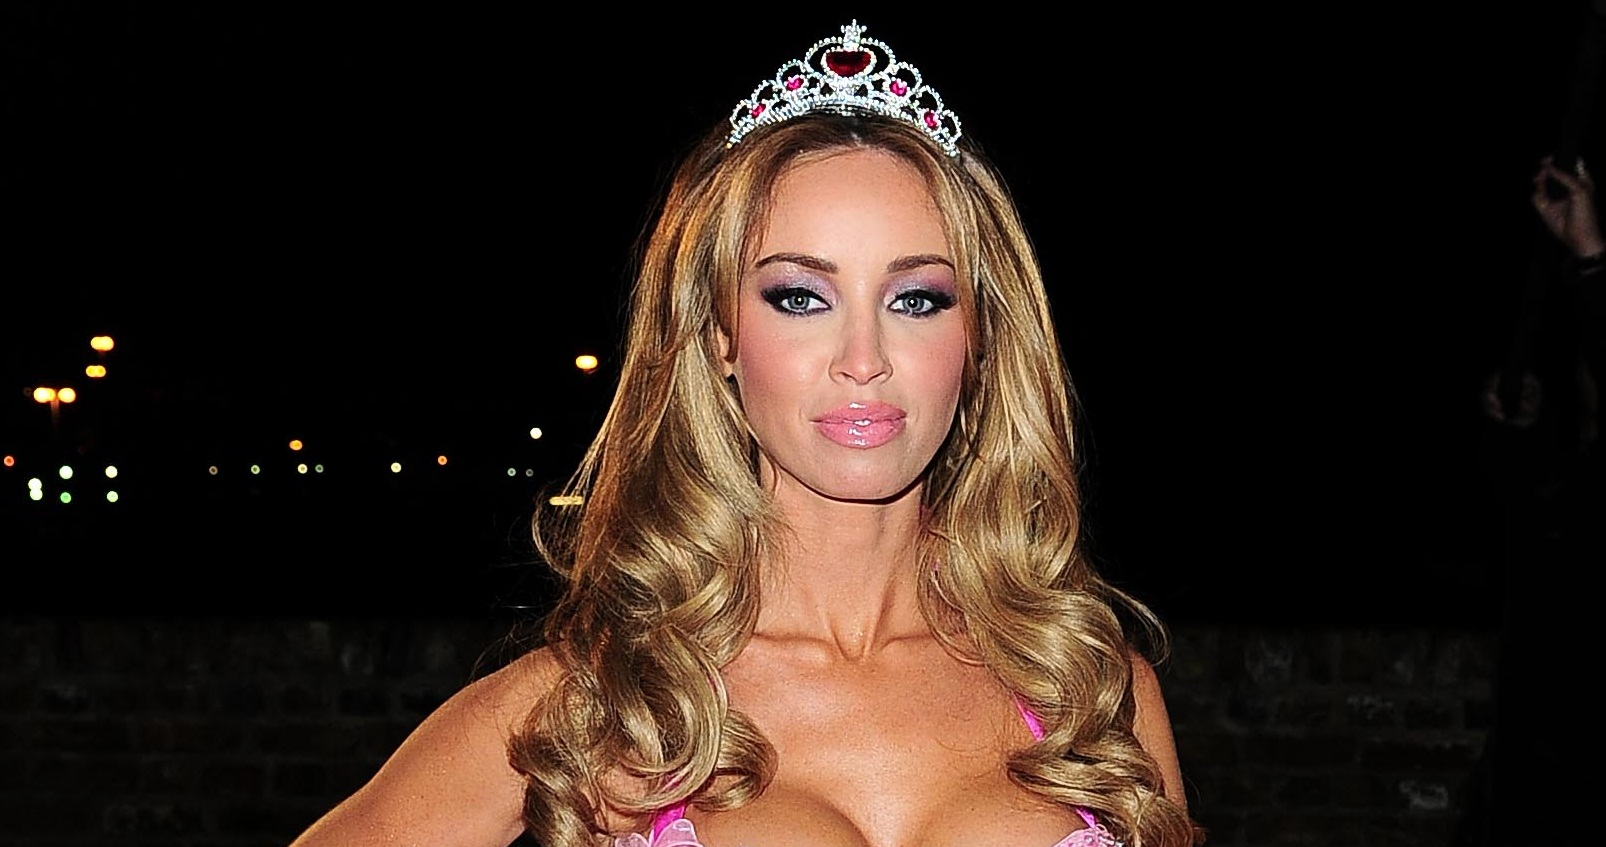 The Only Way Is Essex's Lauren Pope in a princess dress: Dare to wear